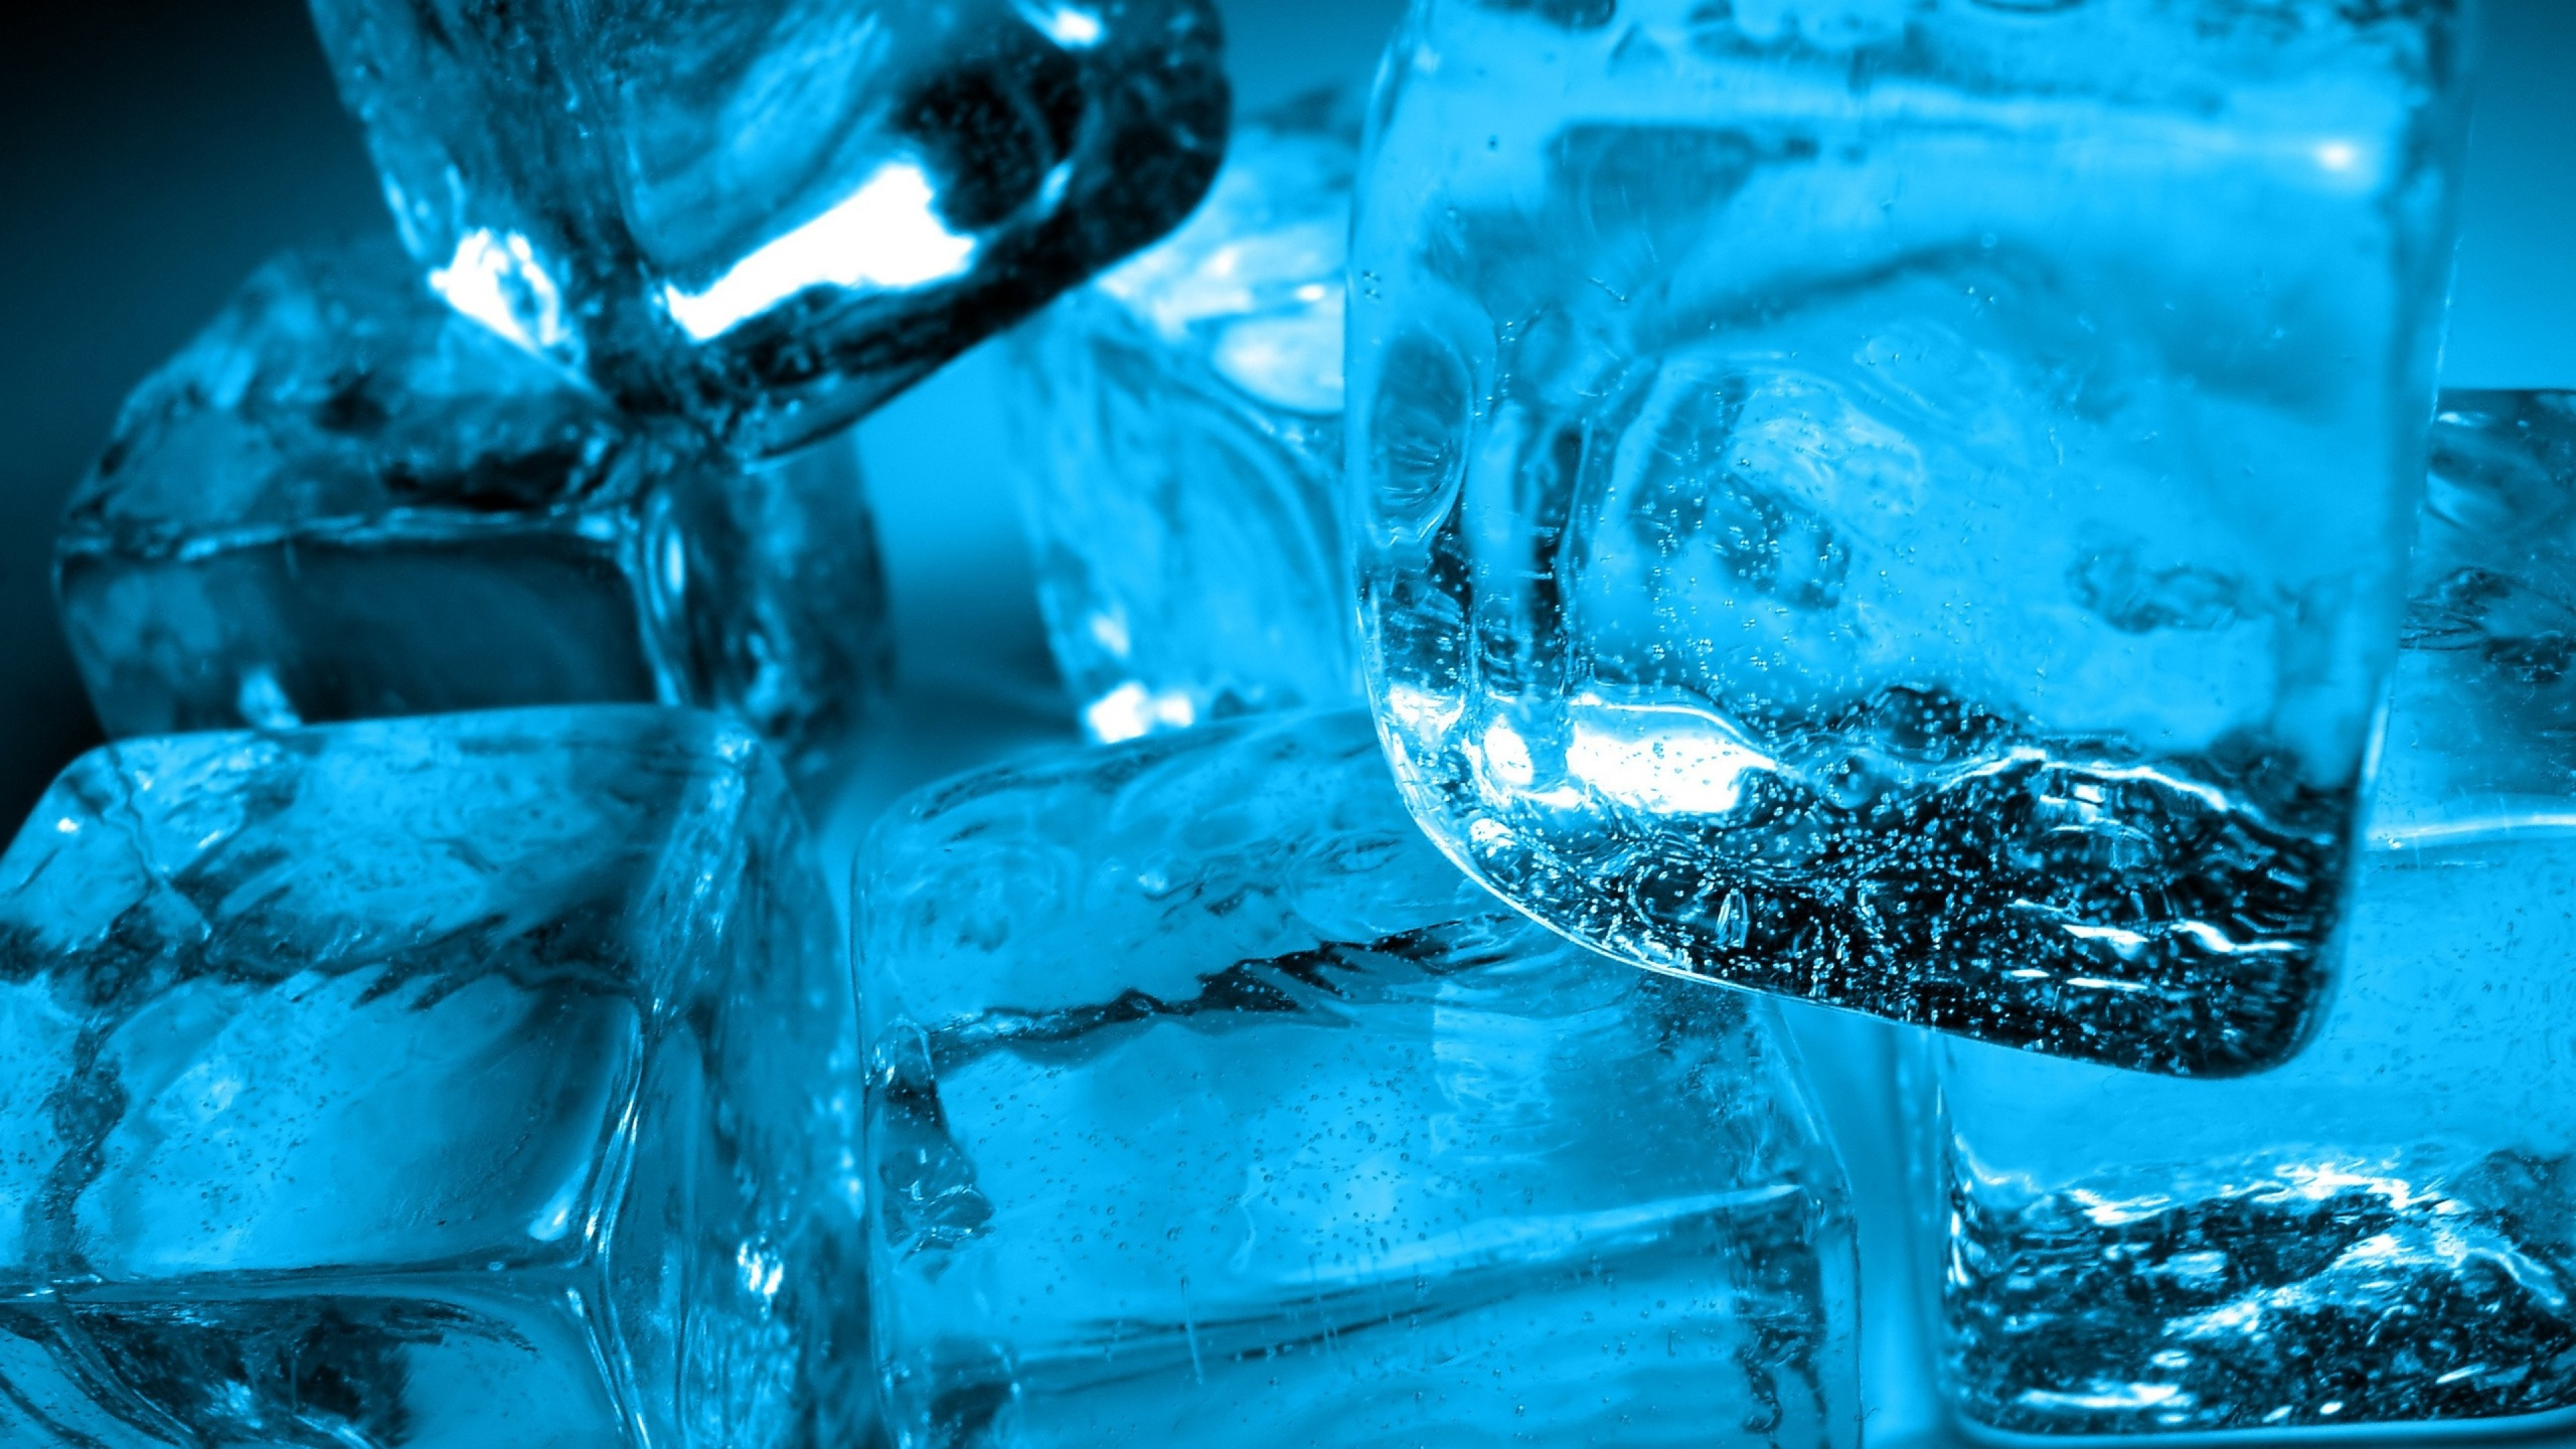 Wallpaper ice, cube, water, cold